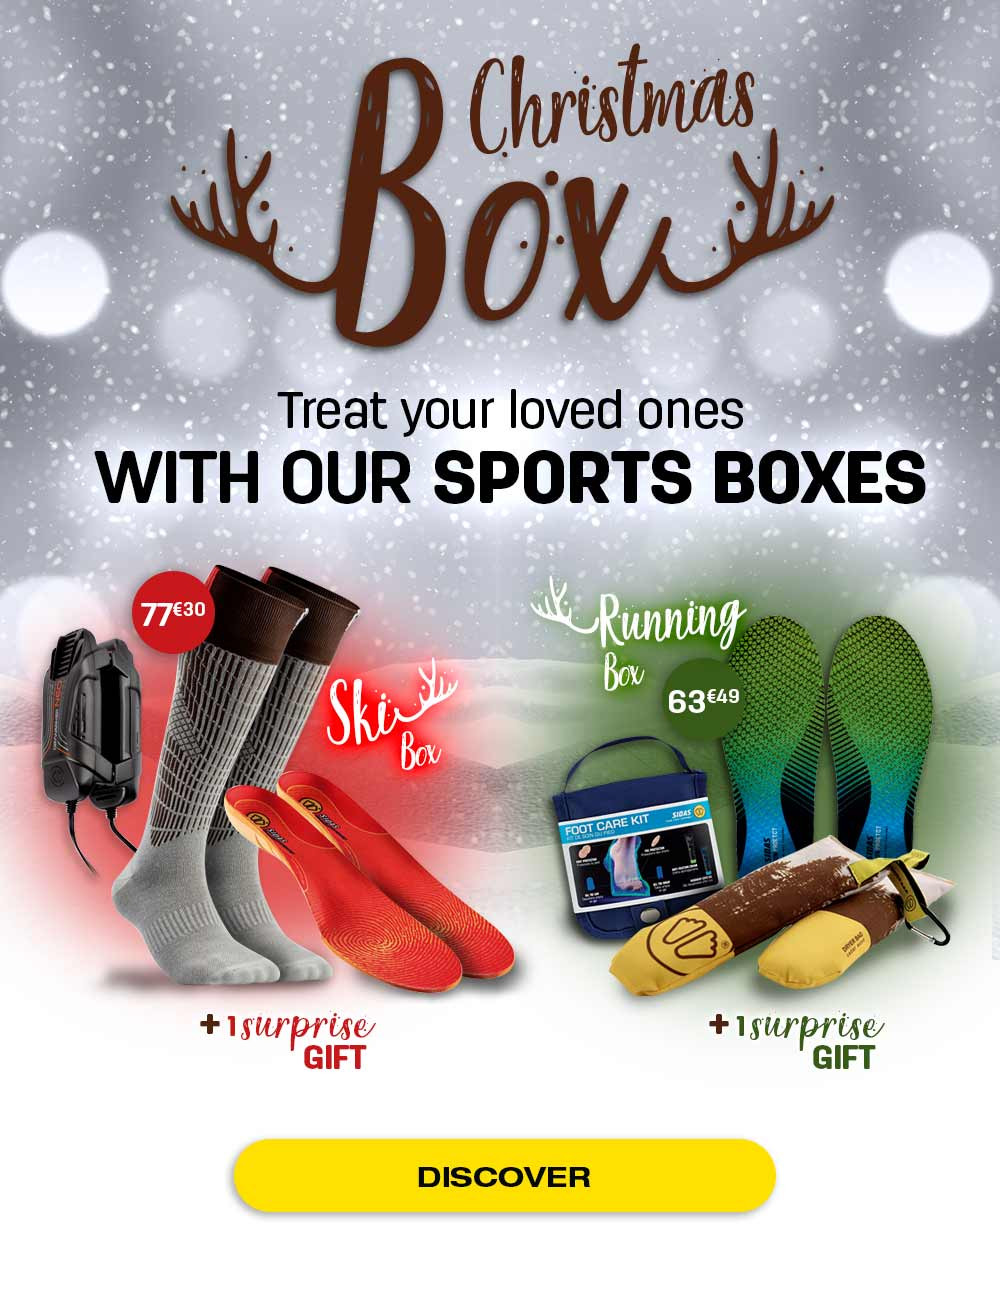 Discover our Christmas box for running or skiing!